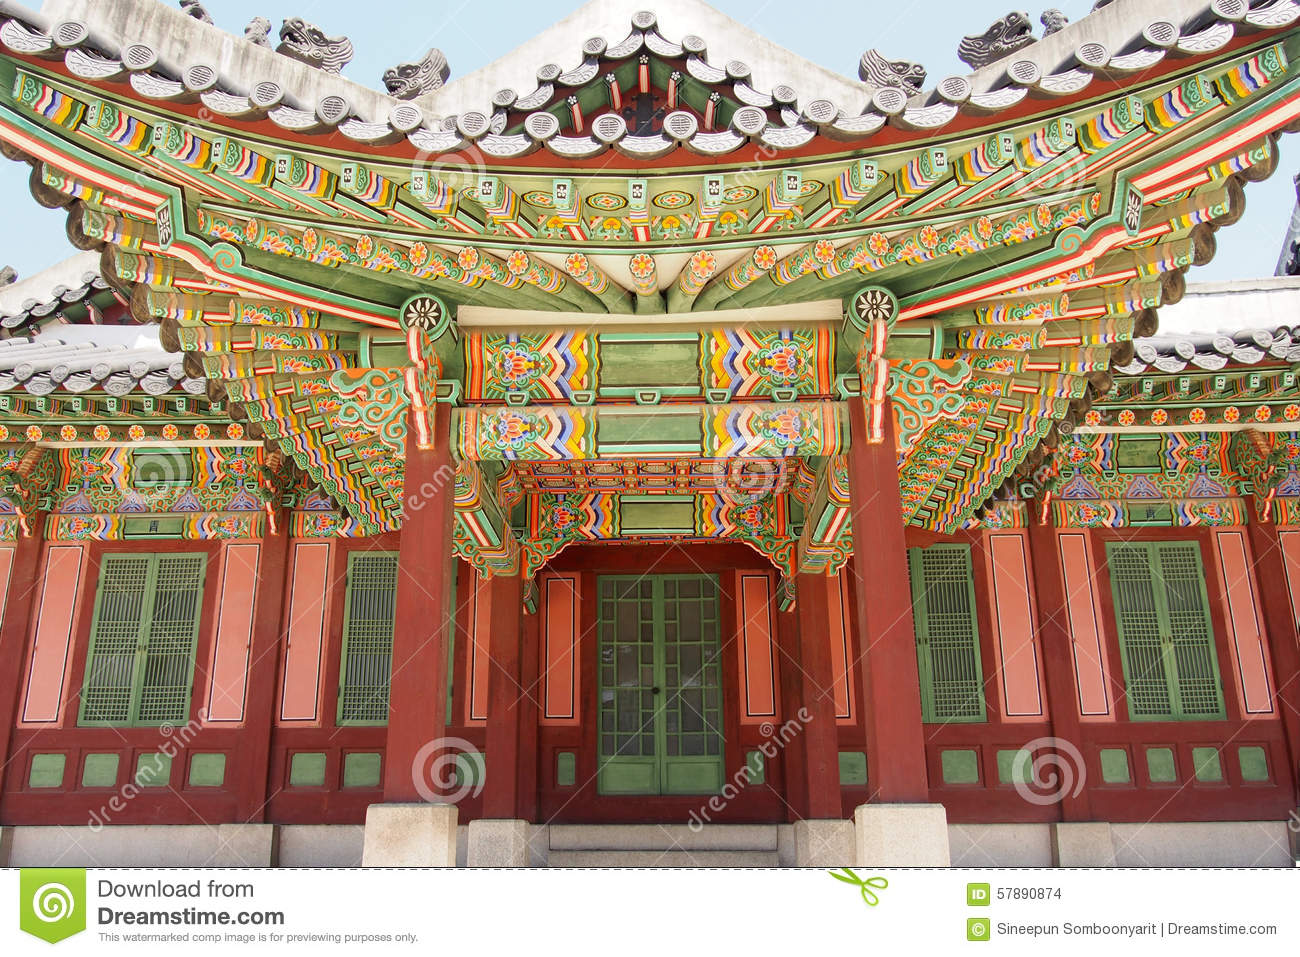 Beautiful and colorful exterior of traditional Korean building